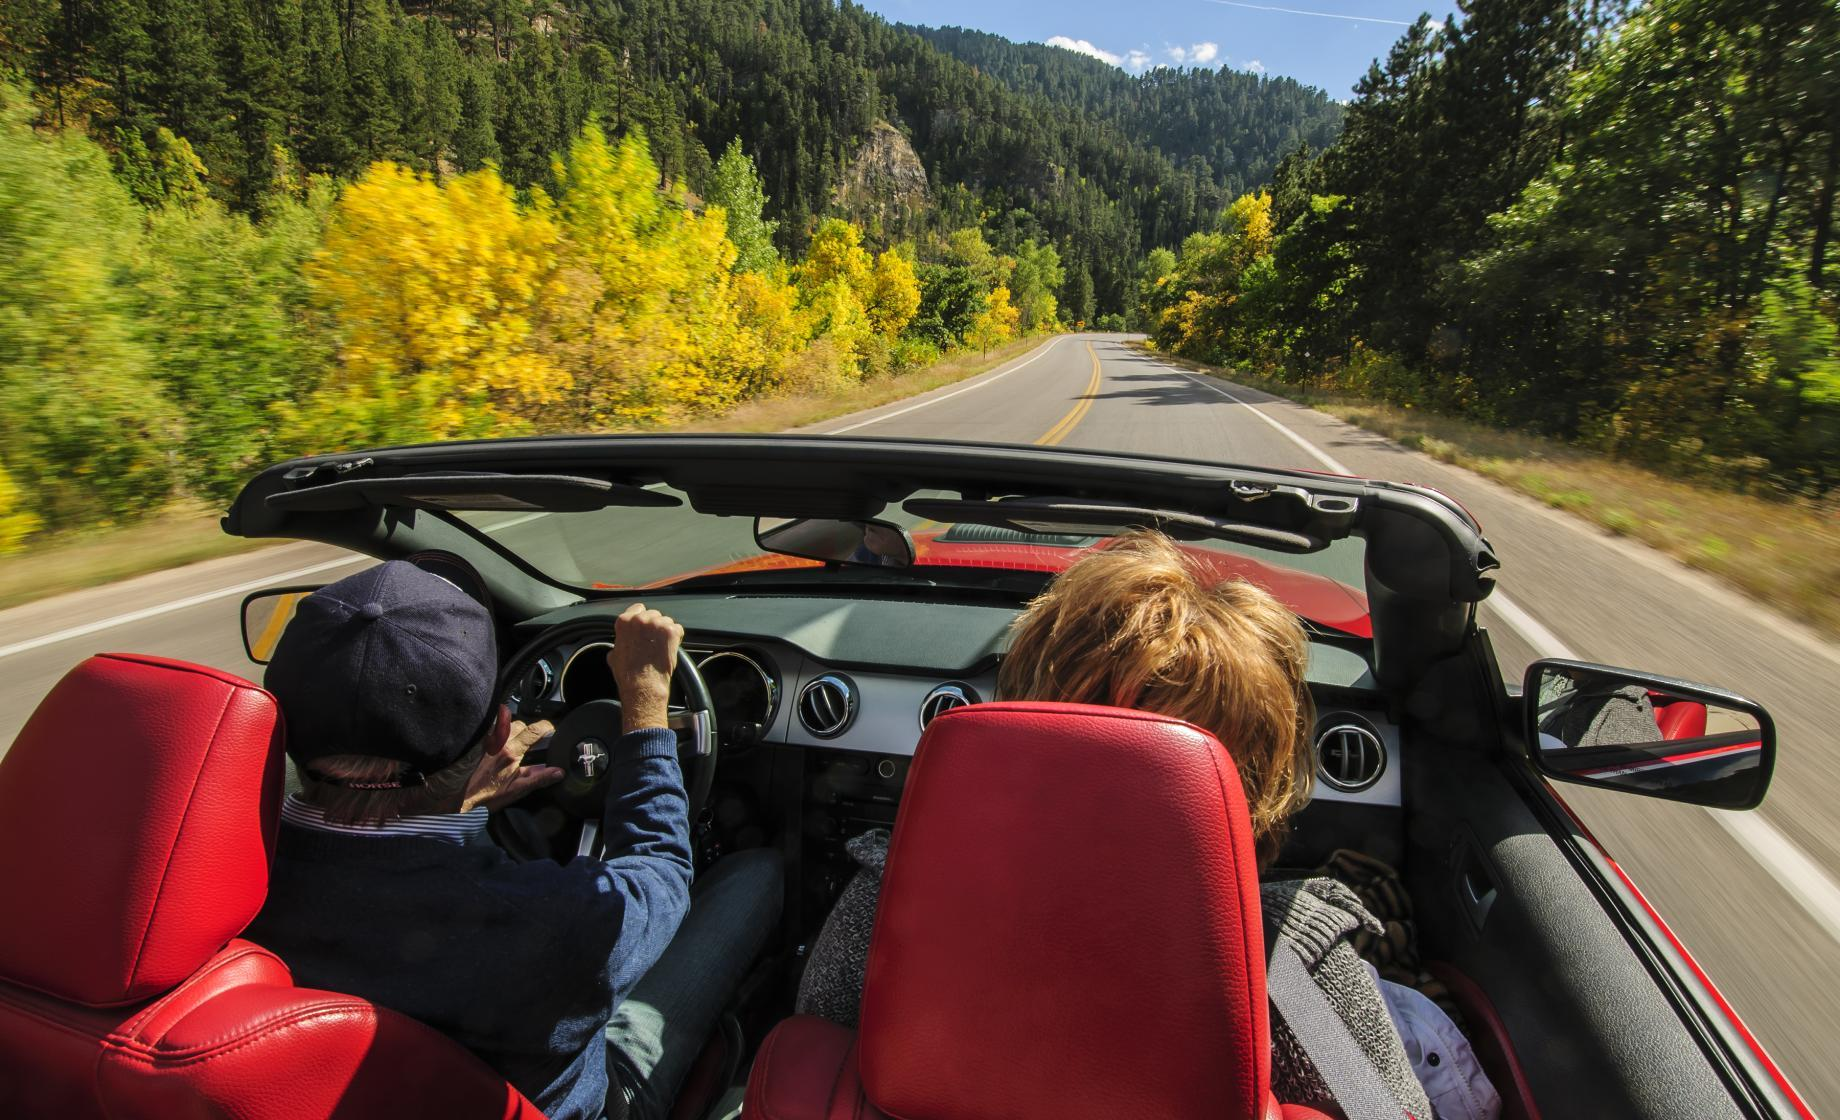 Driving along the Spearfish Canyon State and National Forest Service Scenic Byway